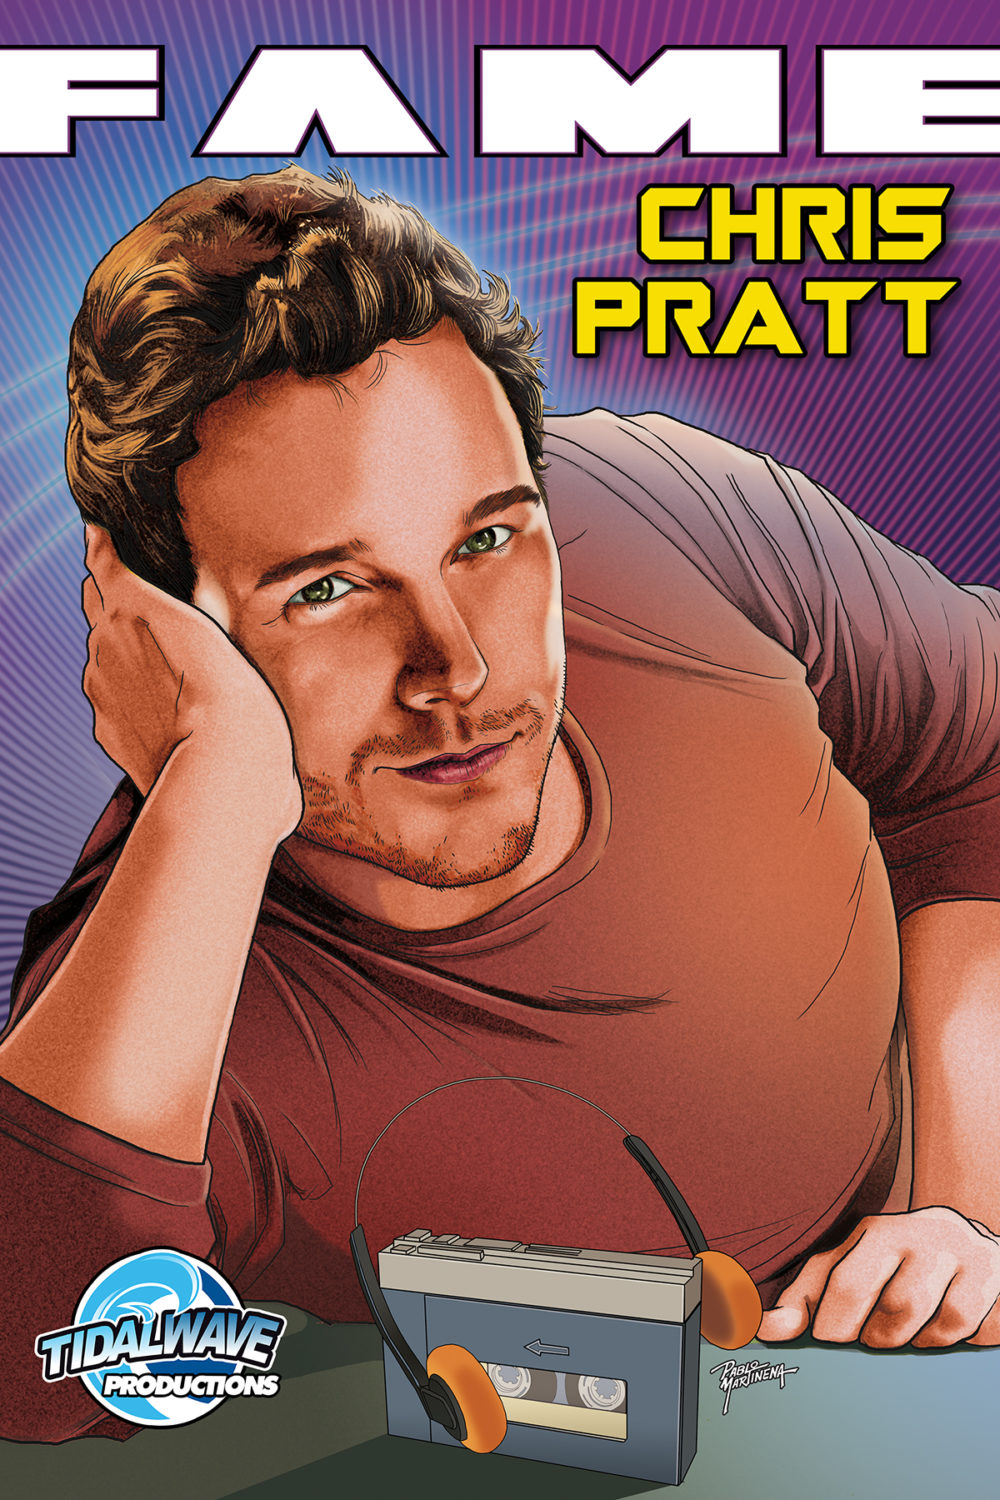 CHRIS PRATT LIFE STORY FEATURED IN NEW COMIC BOOK